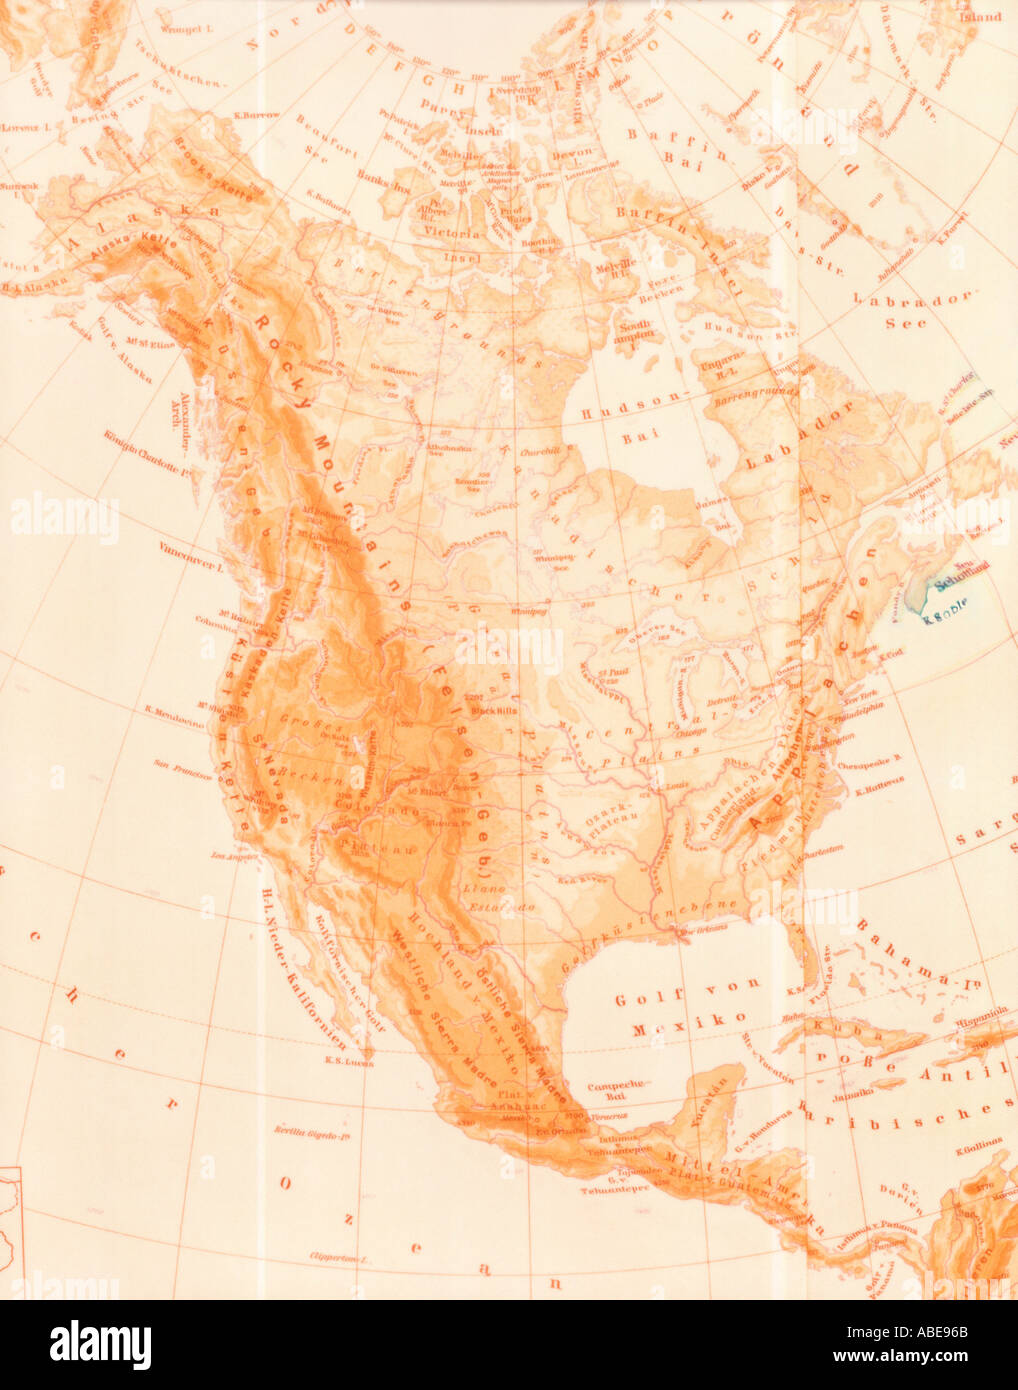 Map of North America - Stock Image